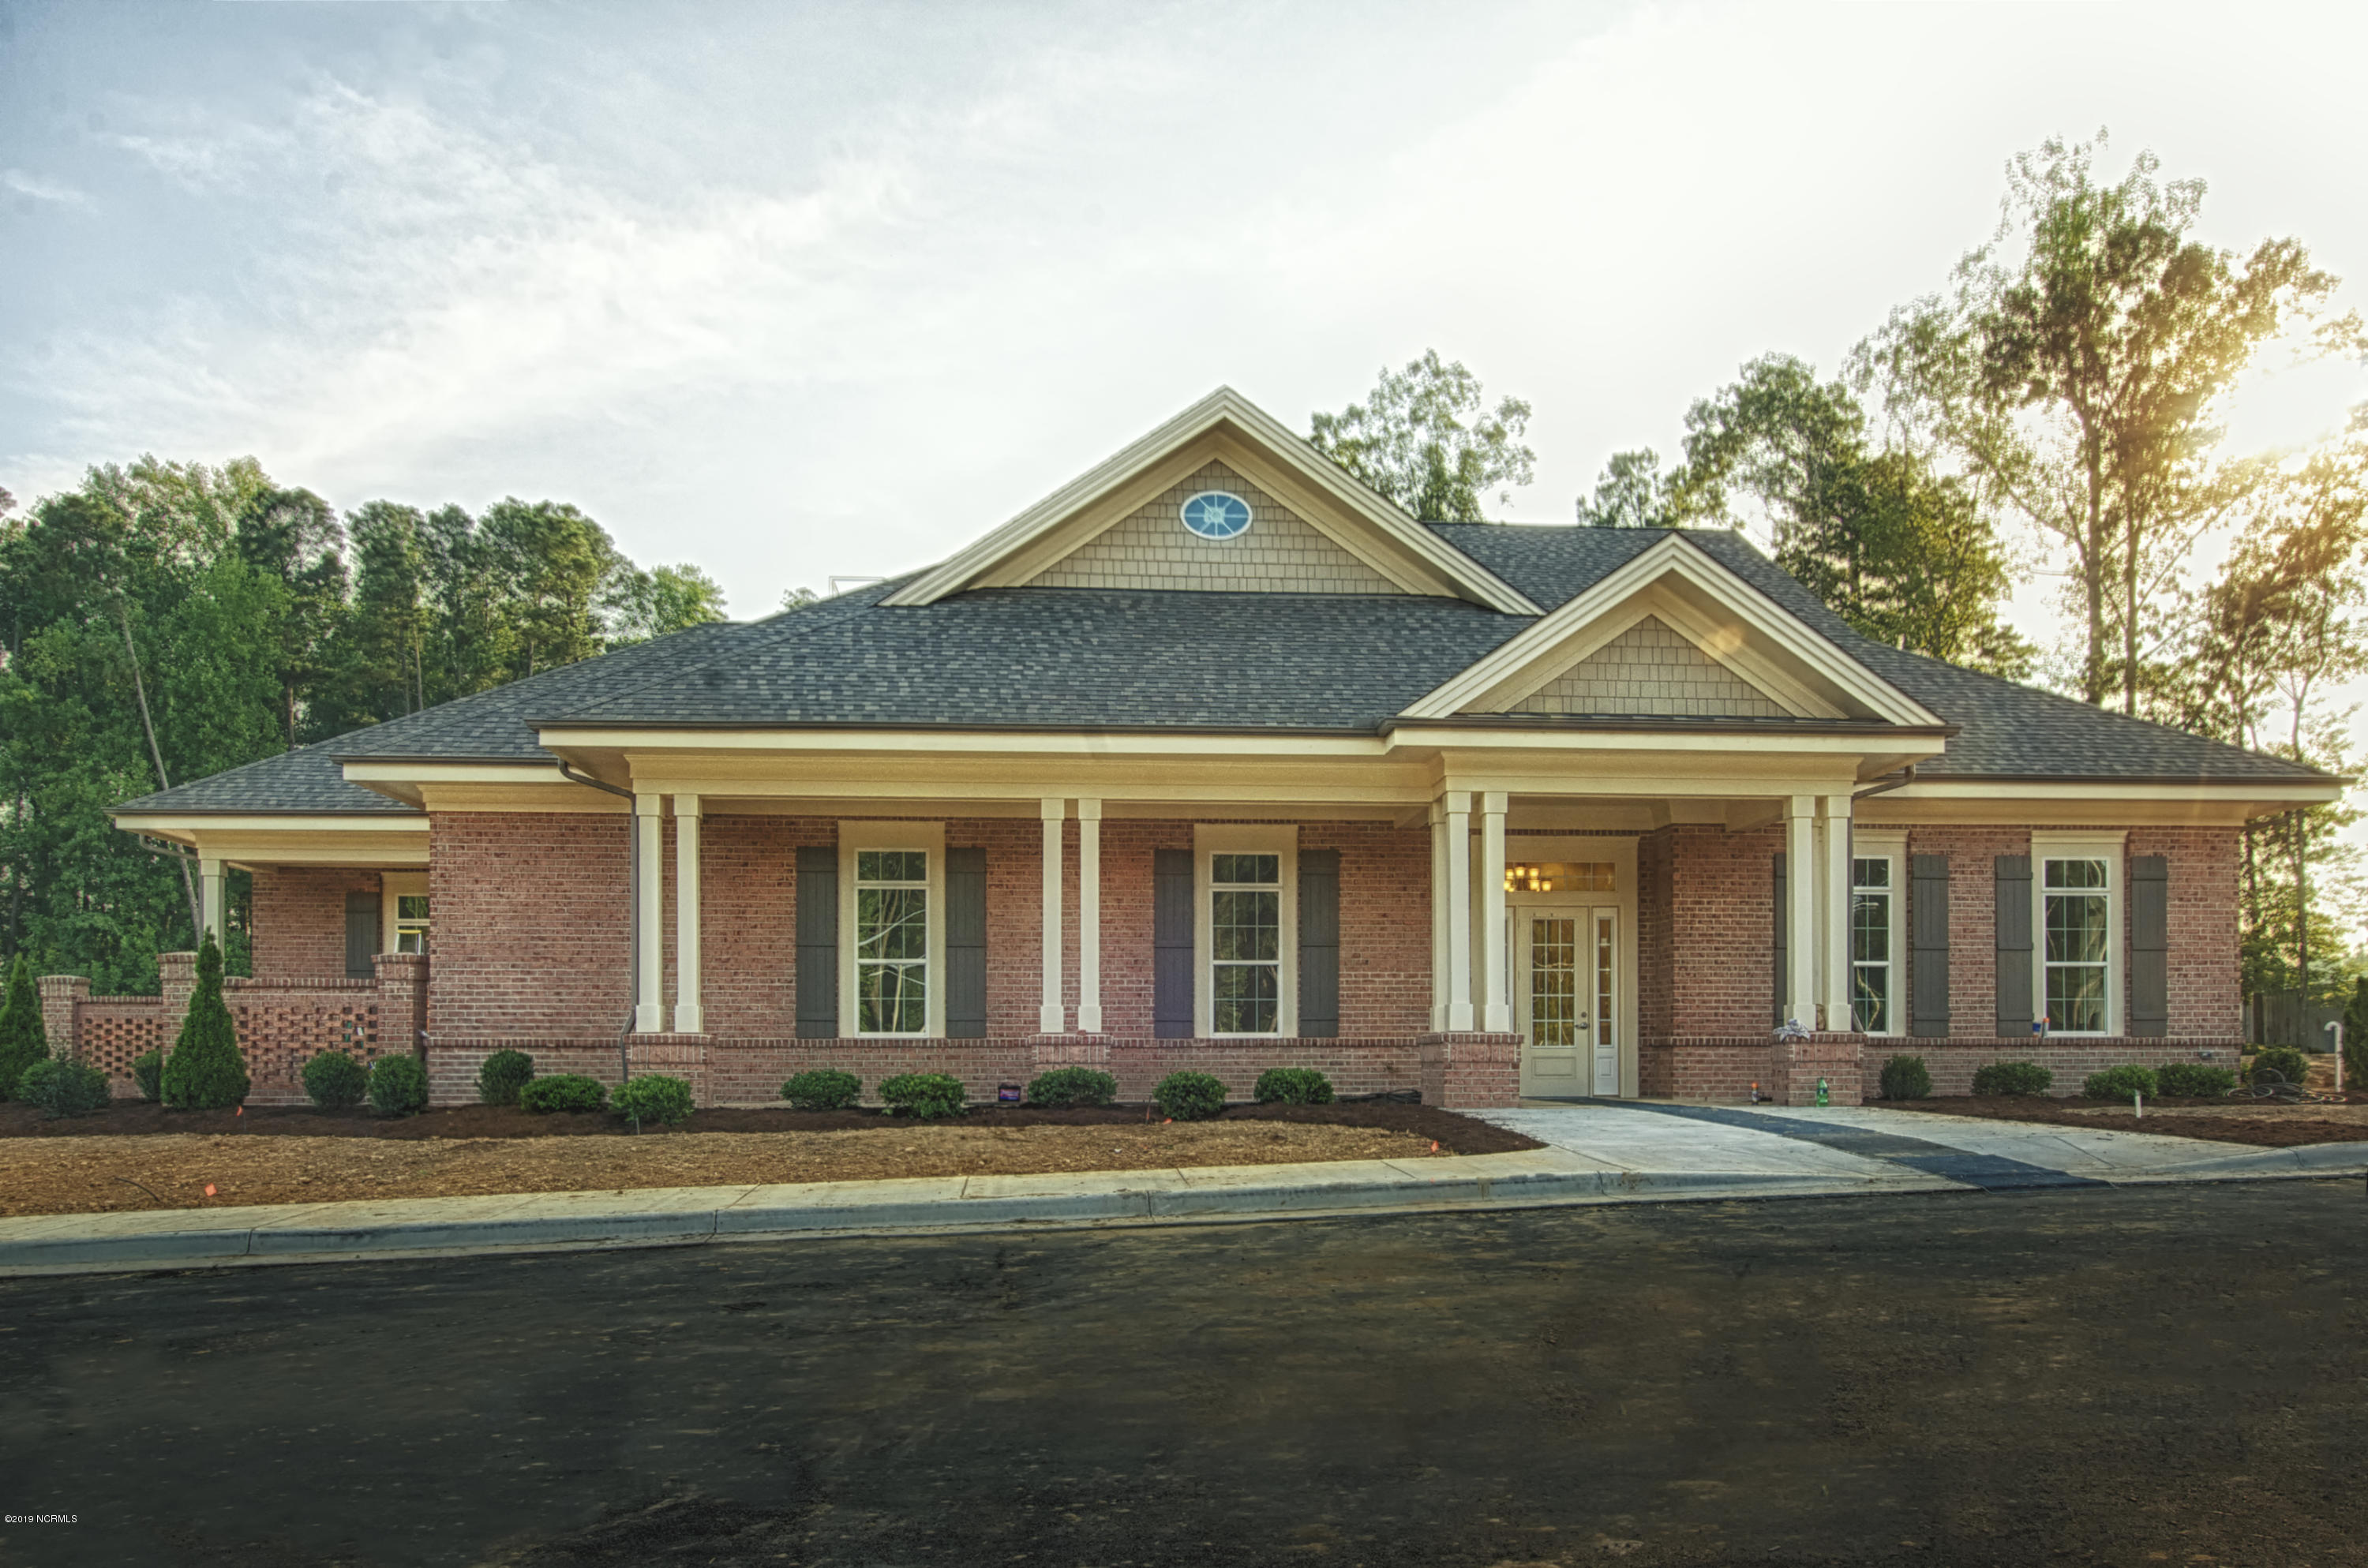 720 Chimney Hill Way, Rocky Mount, North Carolina 27804, ,Residential land,For sale,Chimney Hill,100193306